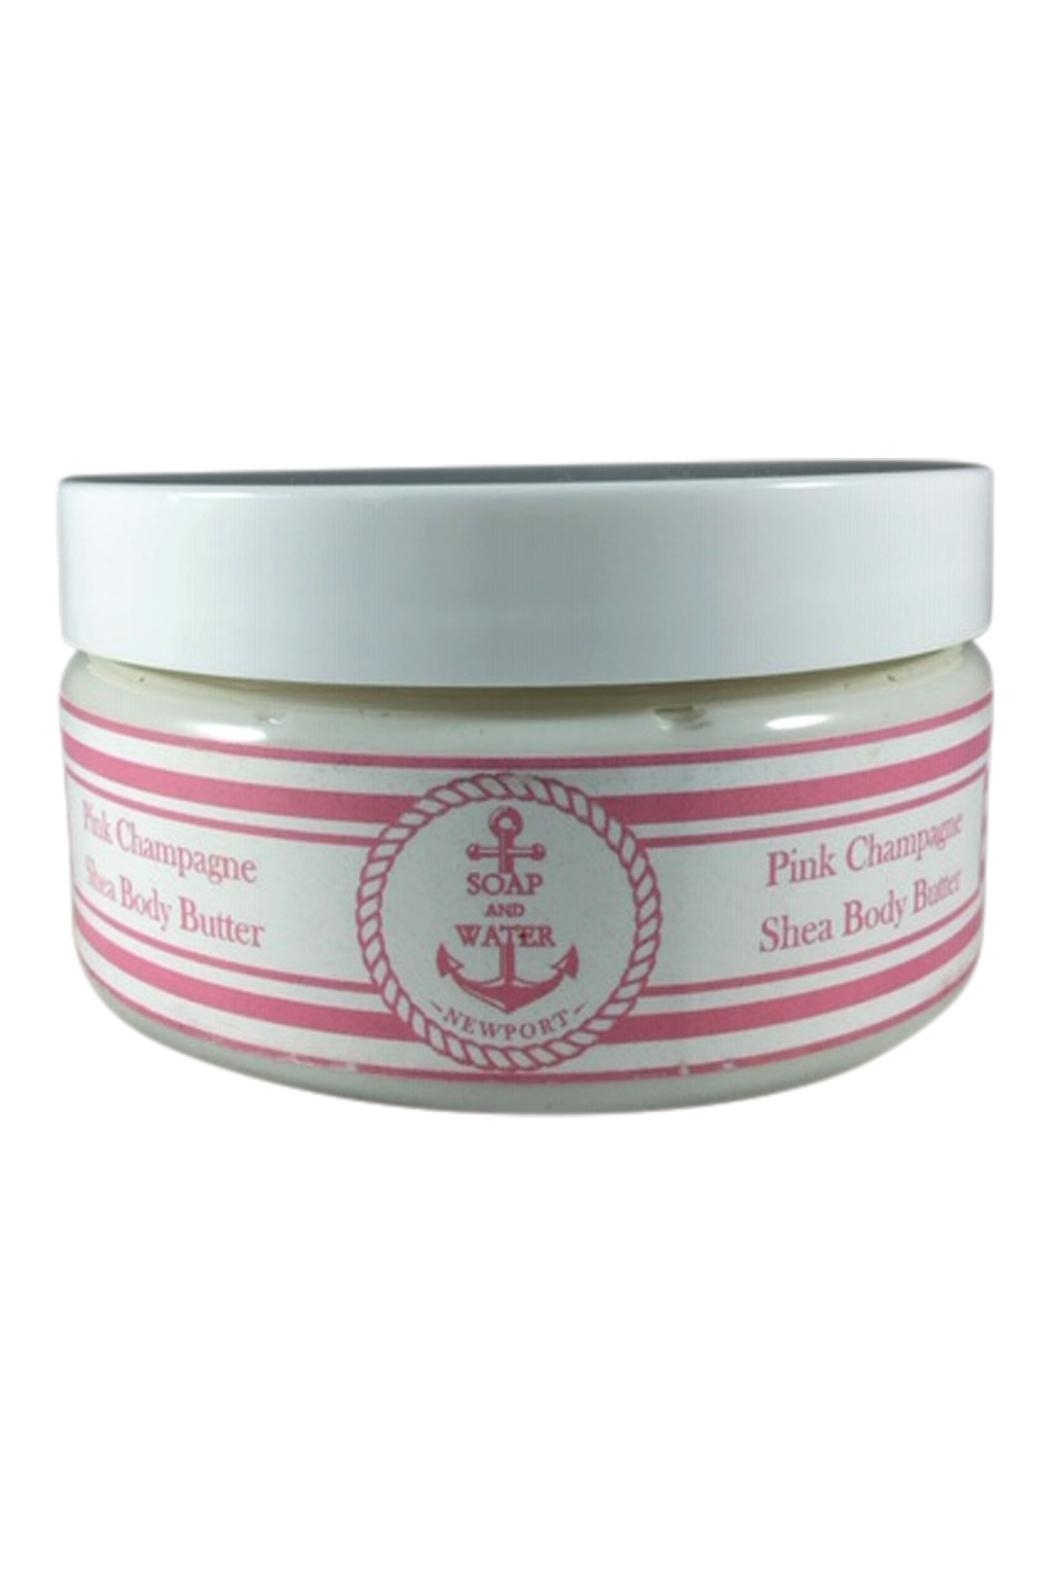 Soap and Water Newport PINK CHAMPAGNE BODY BUTTER - Main Image